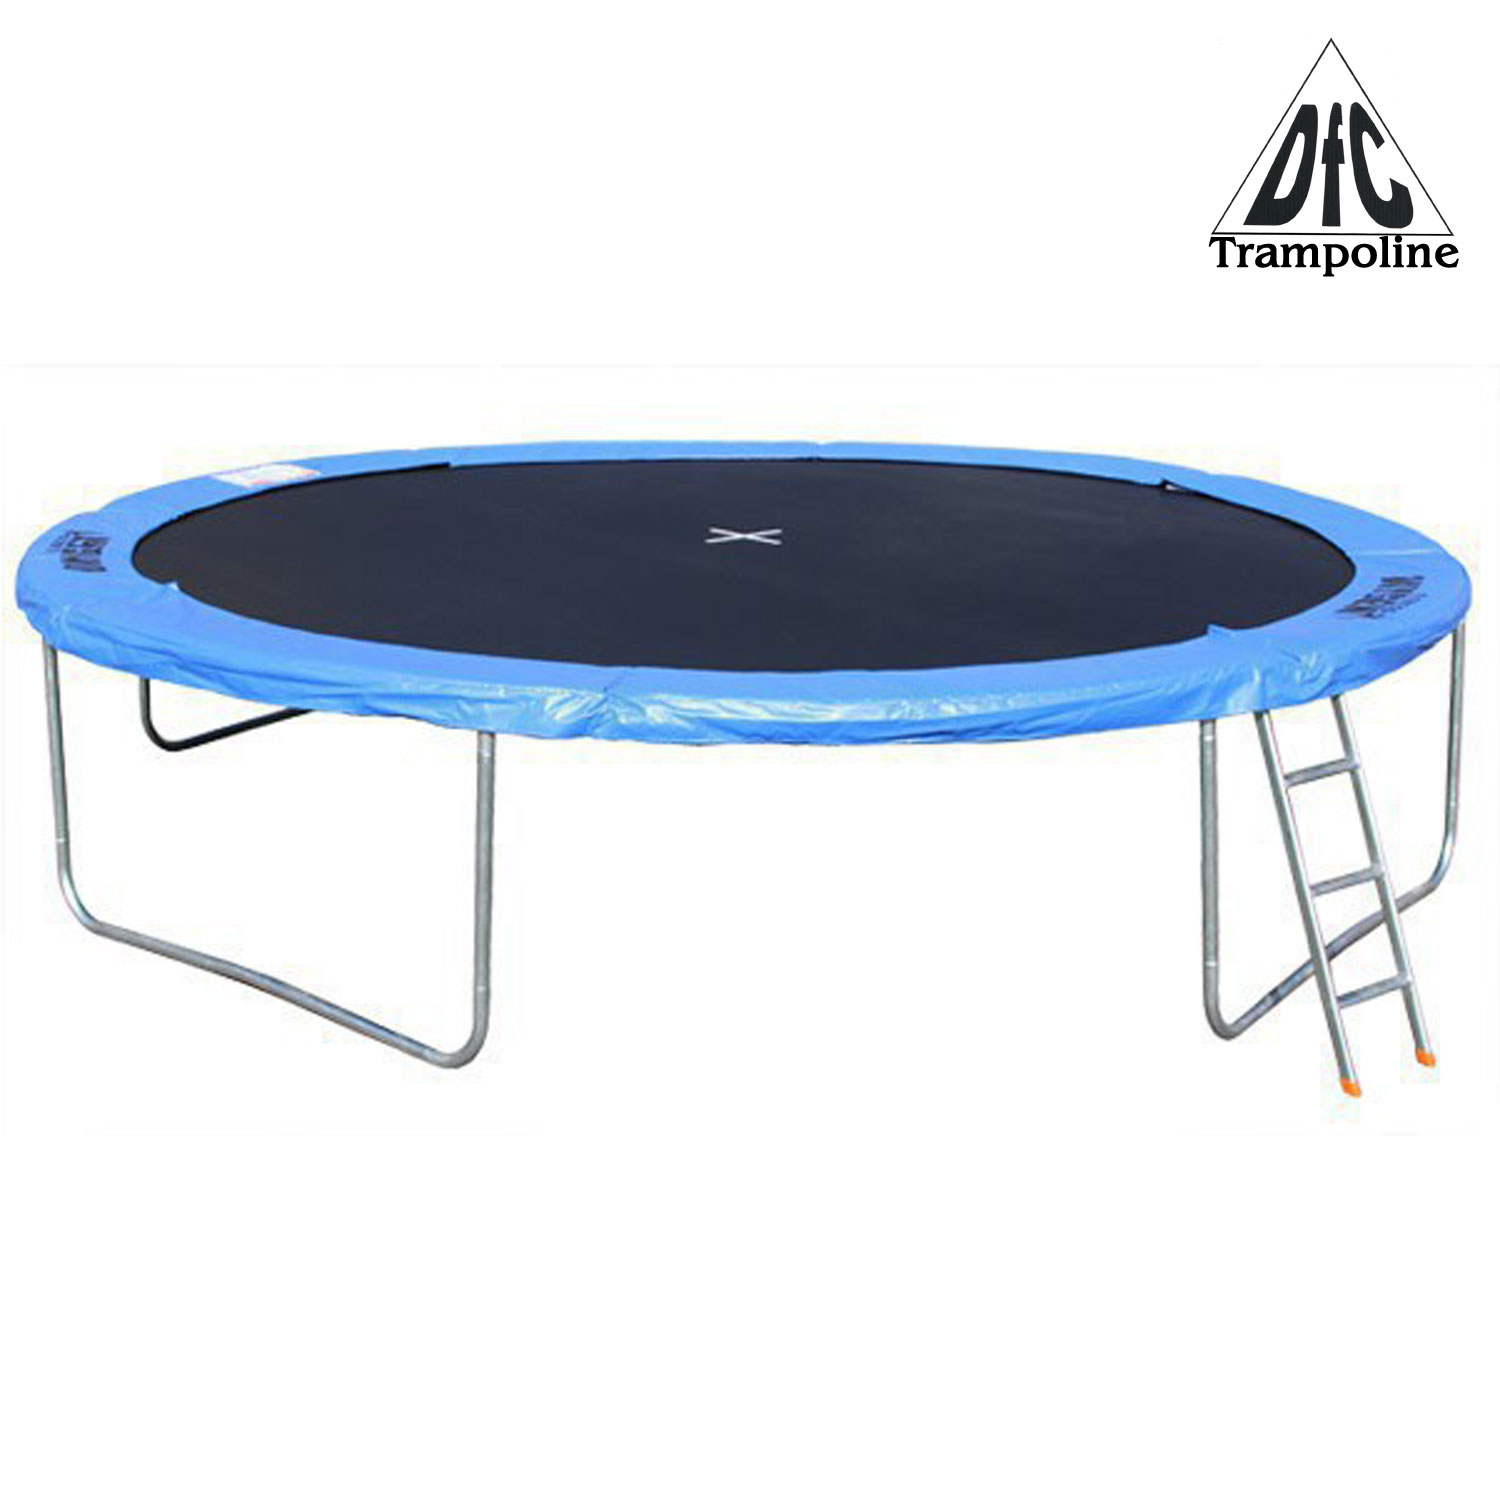 Арт. - БАТУТ DFC TRAMPOLINE FITNESS 6FT-TR, 5192 рублей<a class='btn btn-primary btn-xs' style='margin-left:7px;' href='http://numberfive.ru/c_main/product_view/id_product/10061 '> Cмотреть </a>